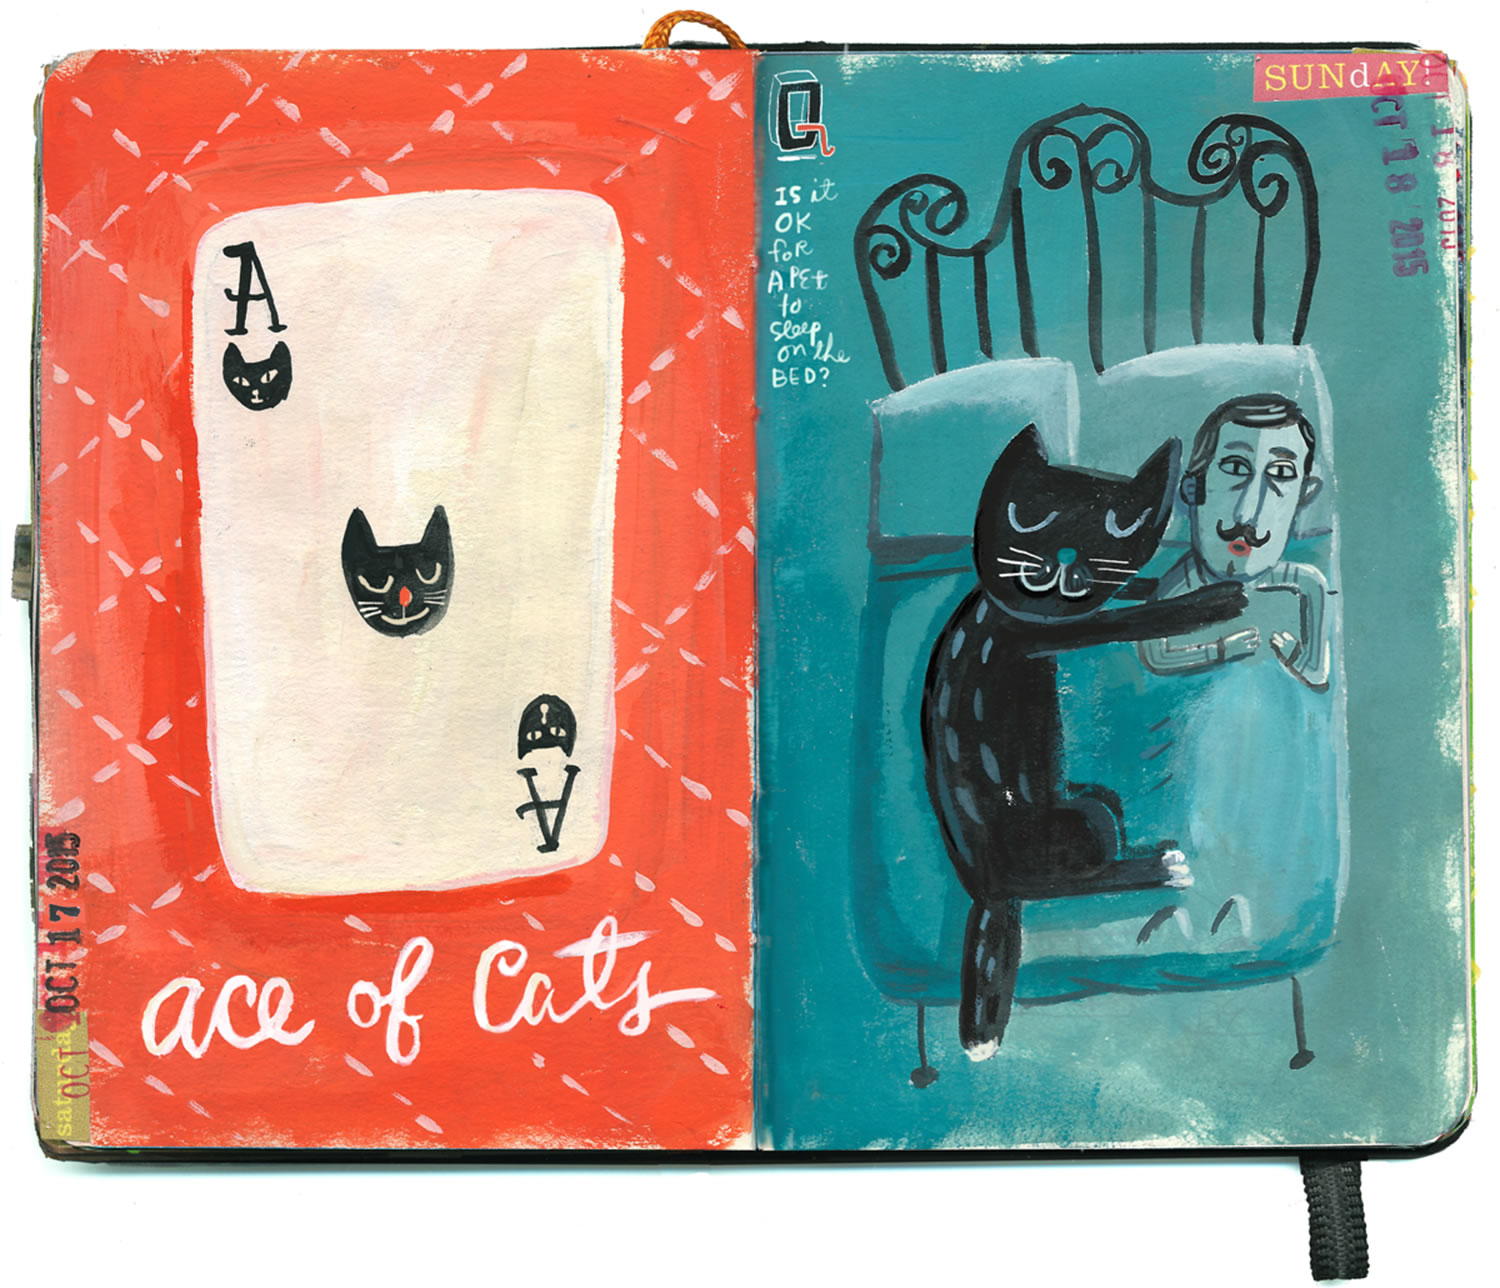 ace (playing card) and cat, sketchbook art by Stephanie Birdsong